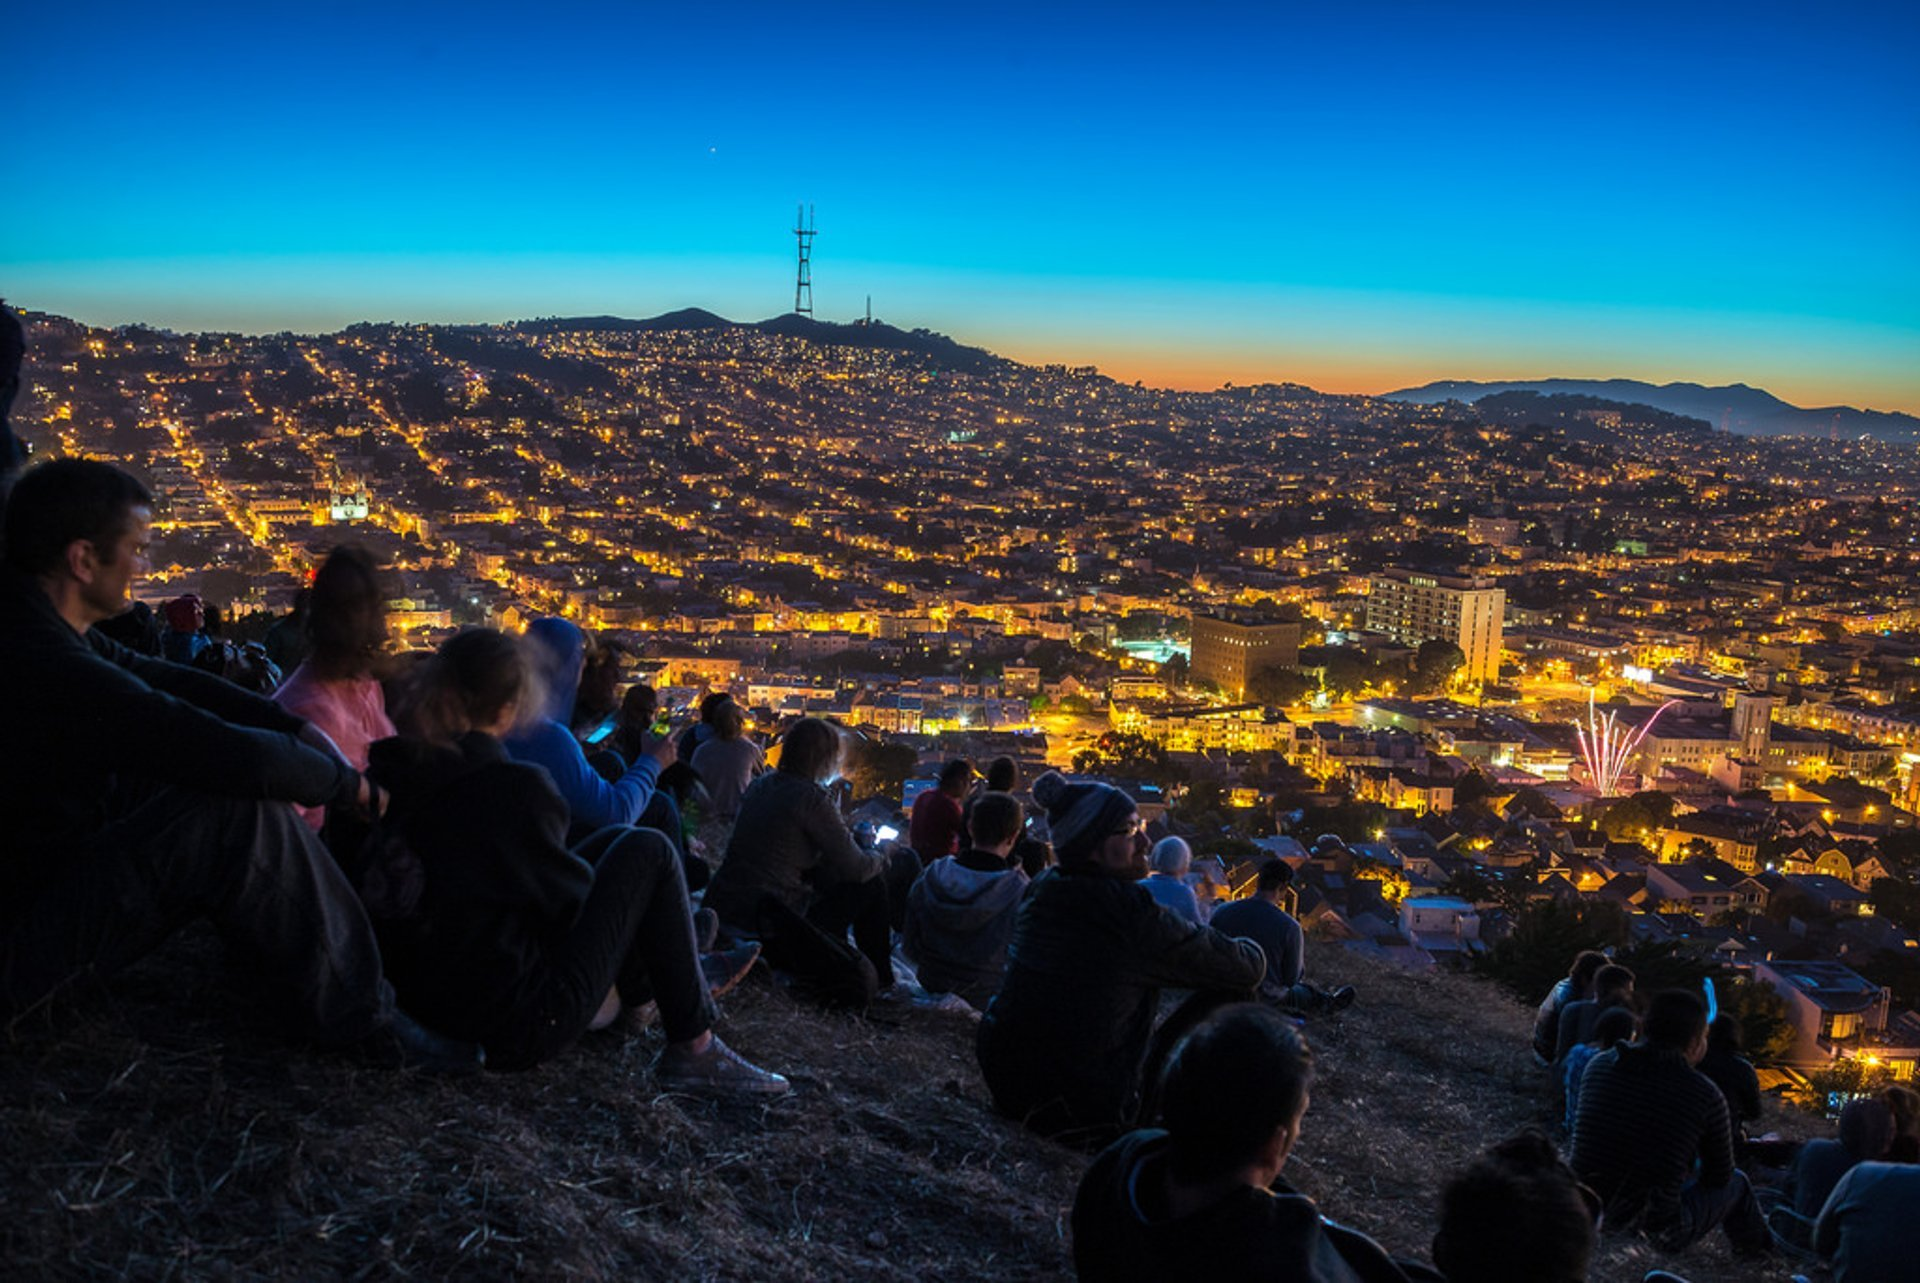 4th of July Fireworks, Bernal Heights Park, San Francisco 2020